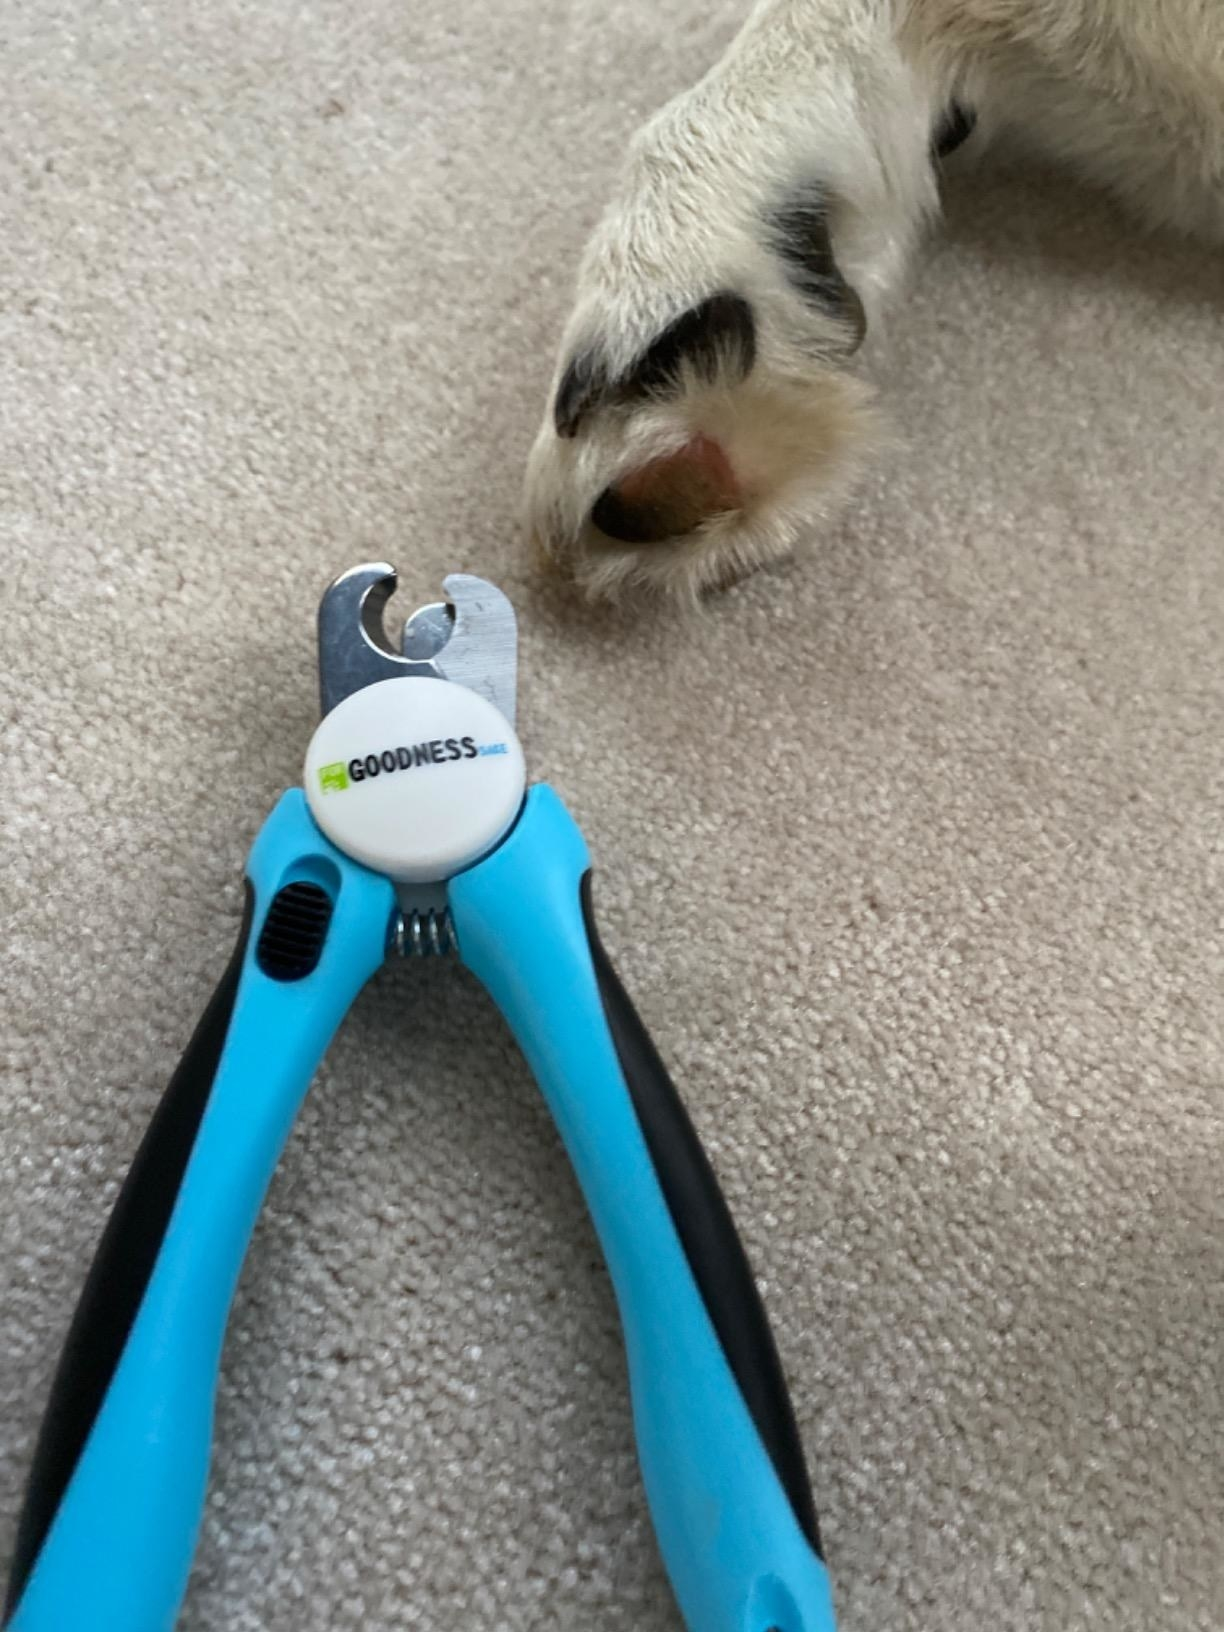 The nail clipper, opened to show size of clipper area in comparison to dog paw